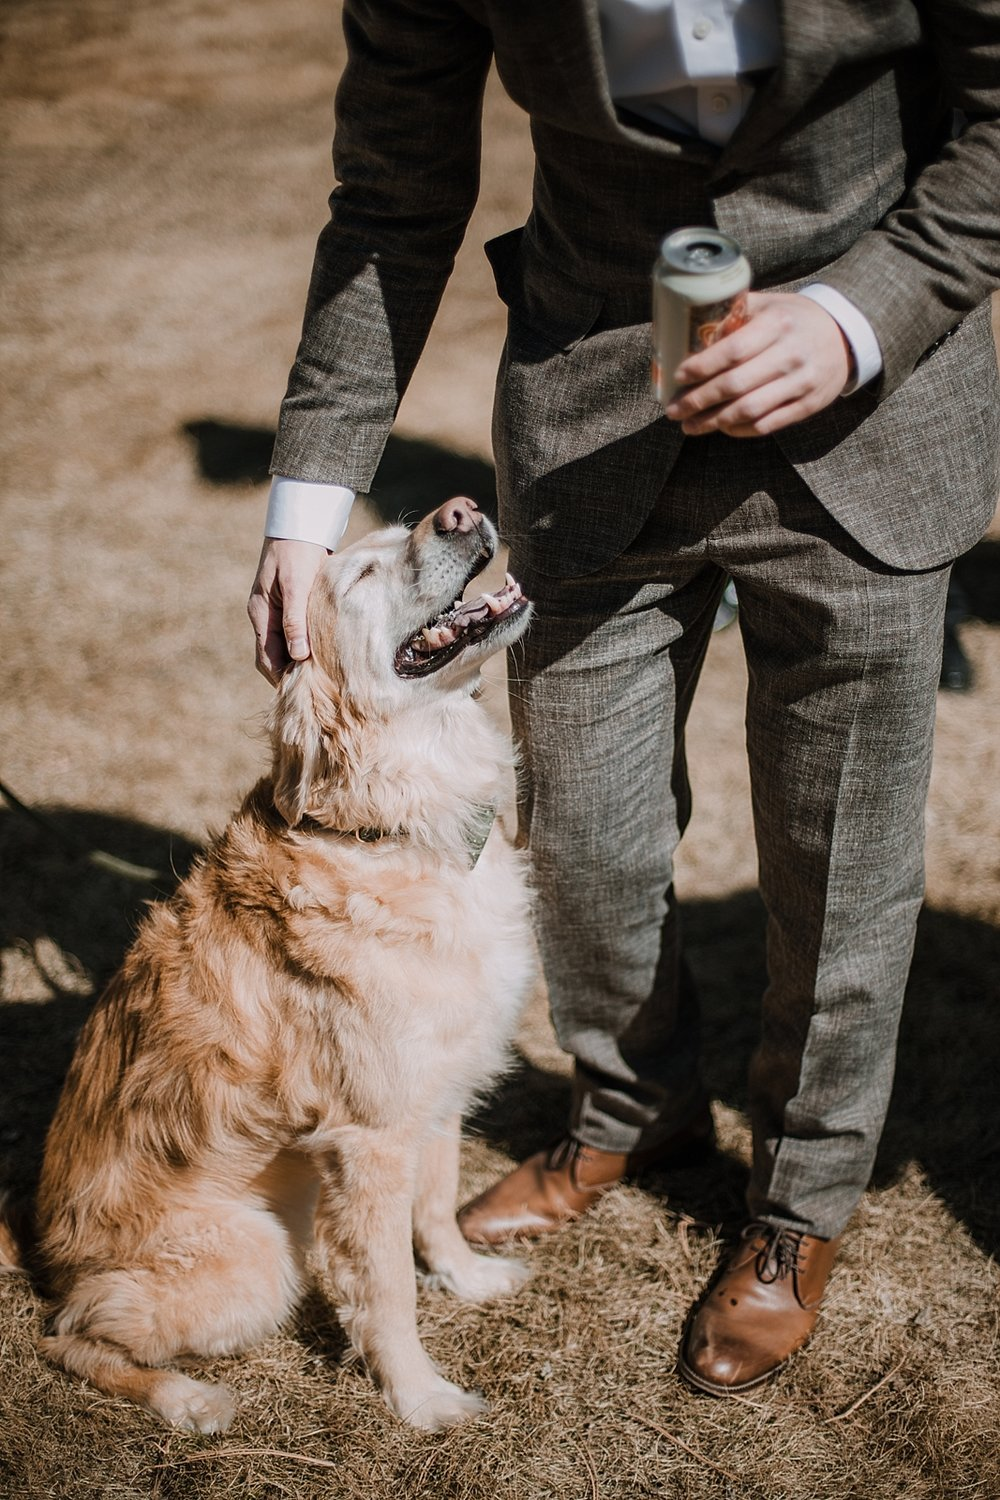 groom and his dog, gateway natural area elopement, seaman reservoir elopement, fort collins colorado elopement, colorado elopement, fort collins wedding photographer, golden retriever